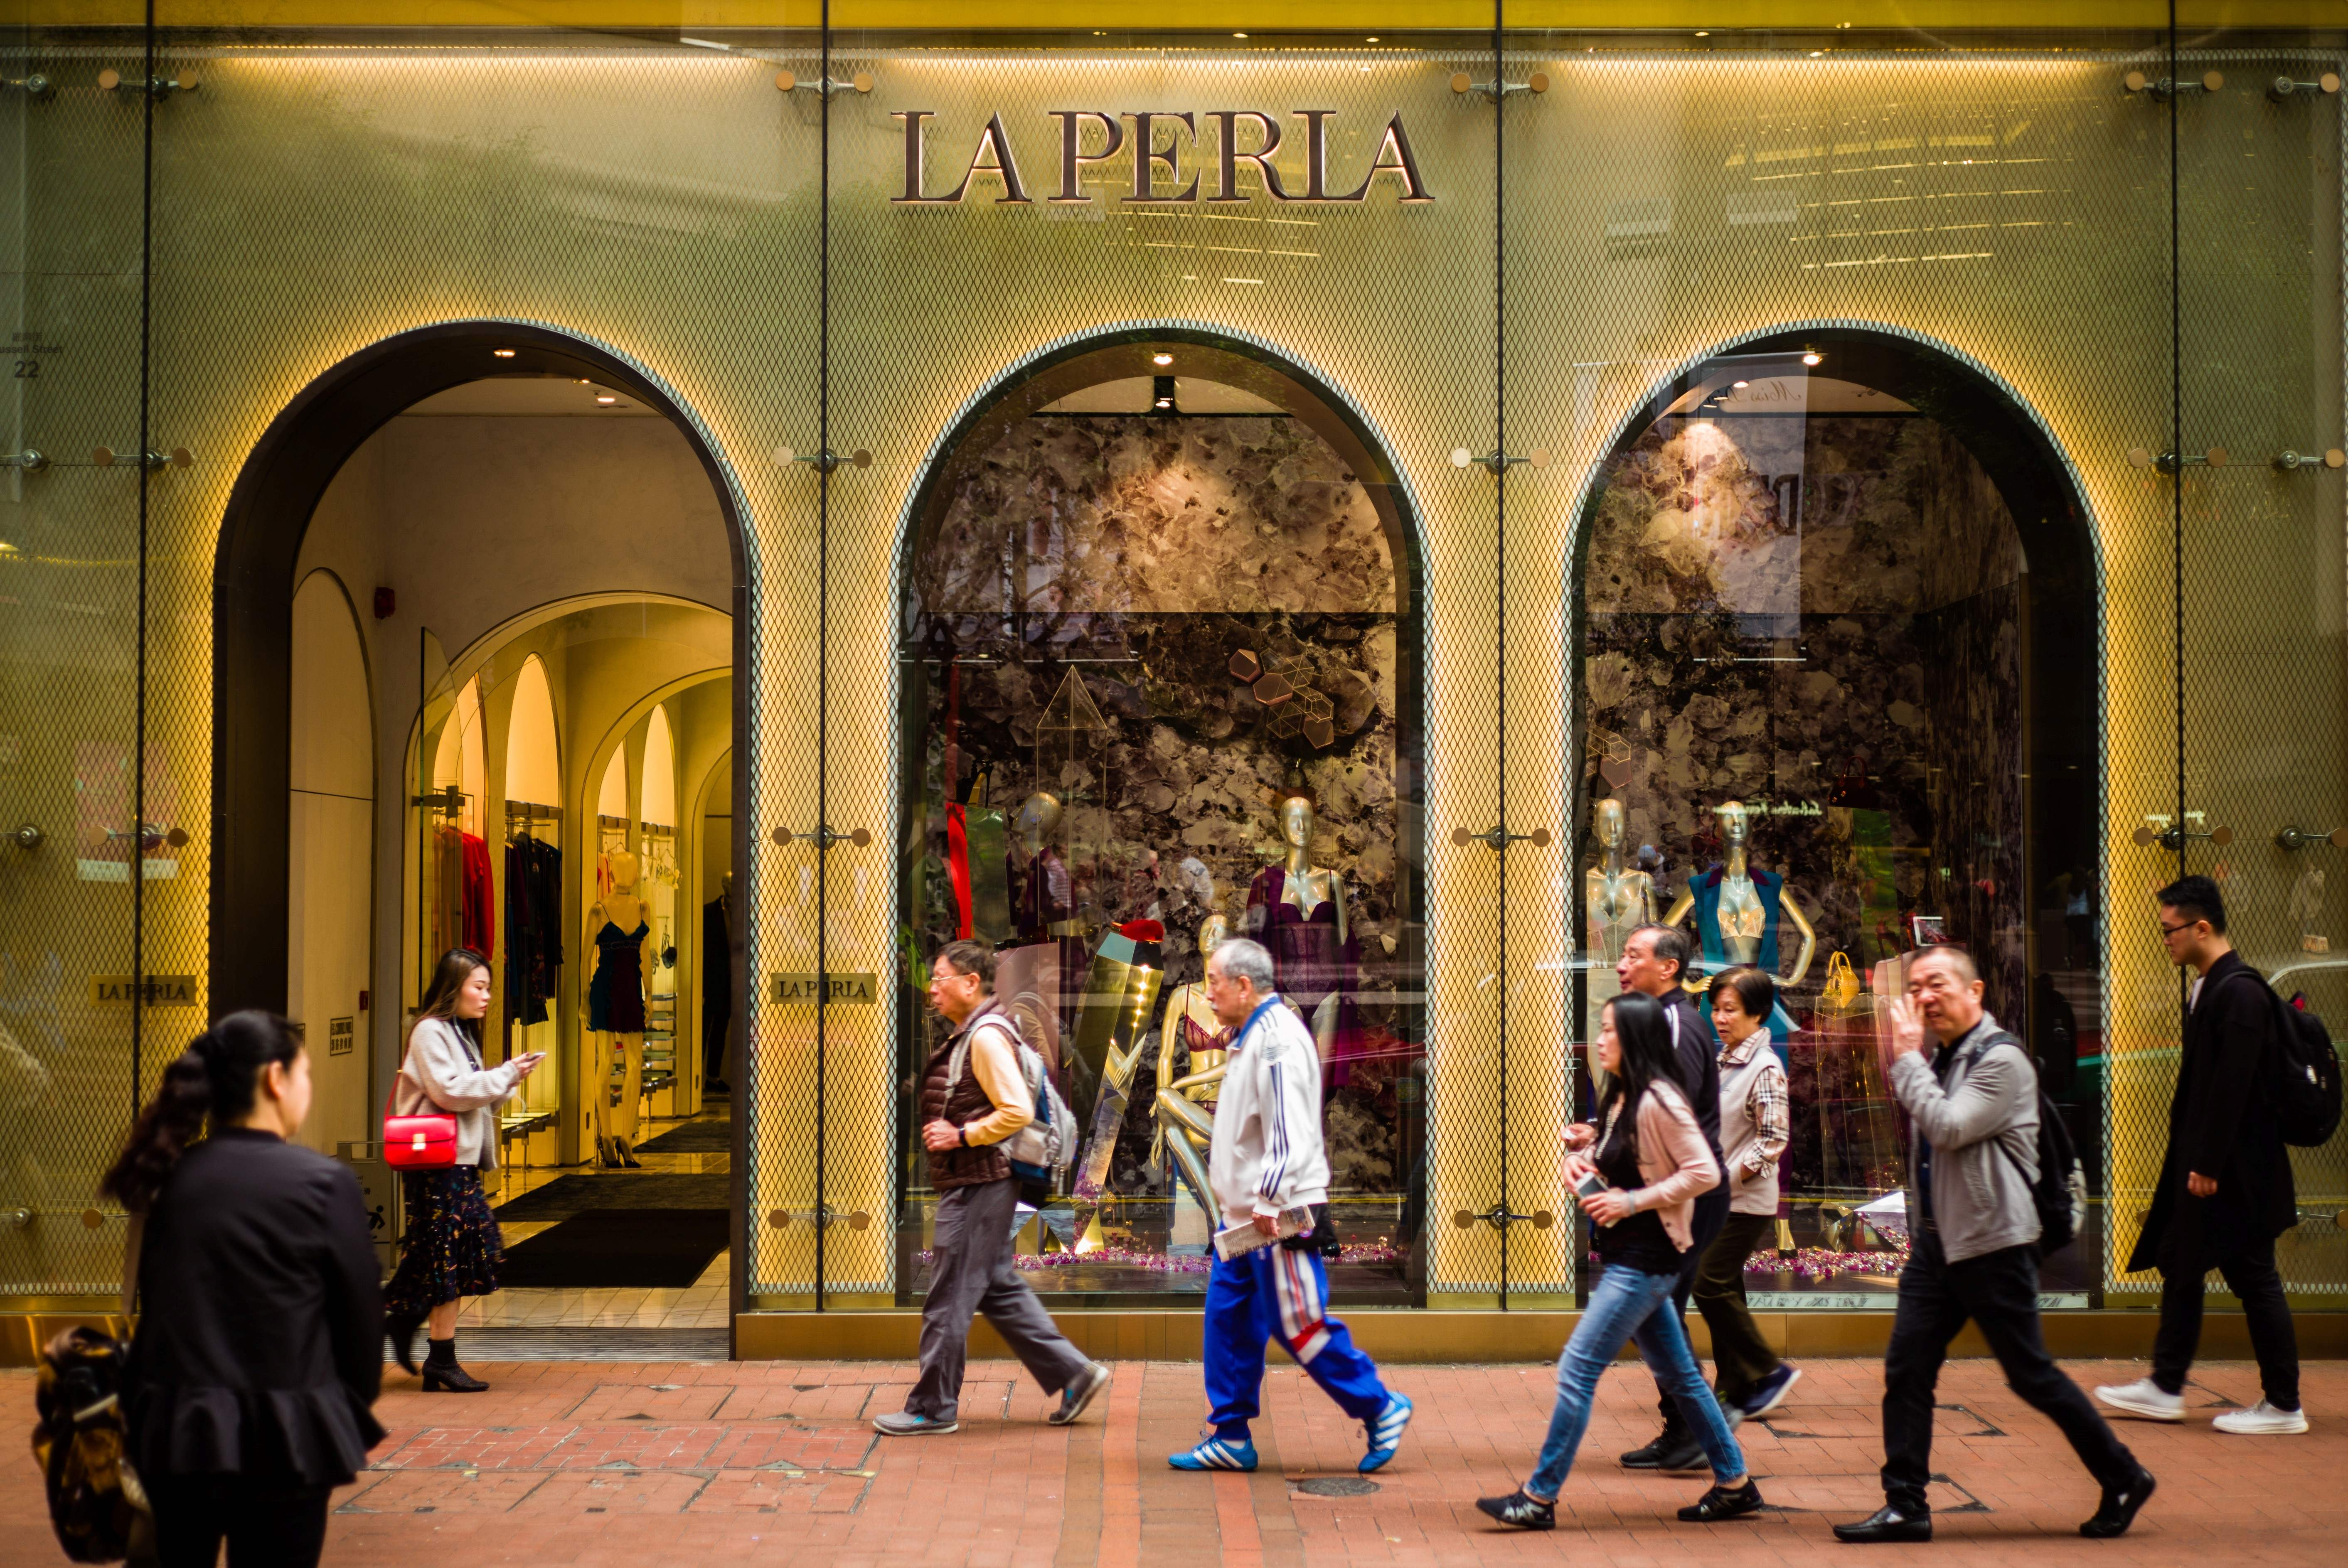 The Italian luxury lingerie brand La Perla in the Causeway Bay district of Hong Kong.